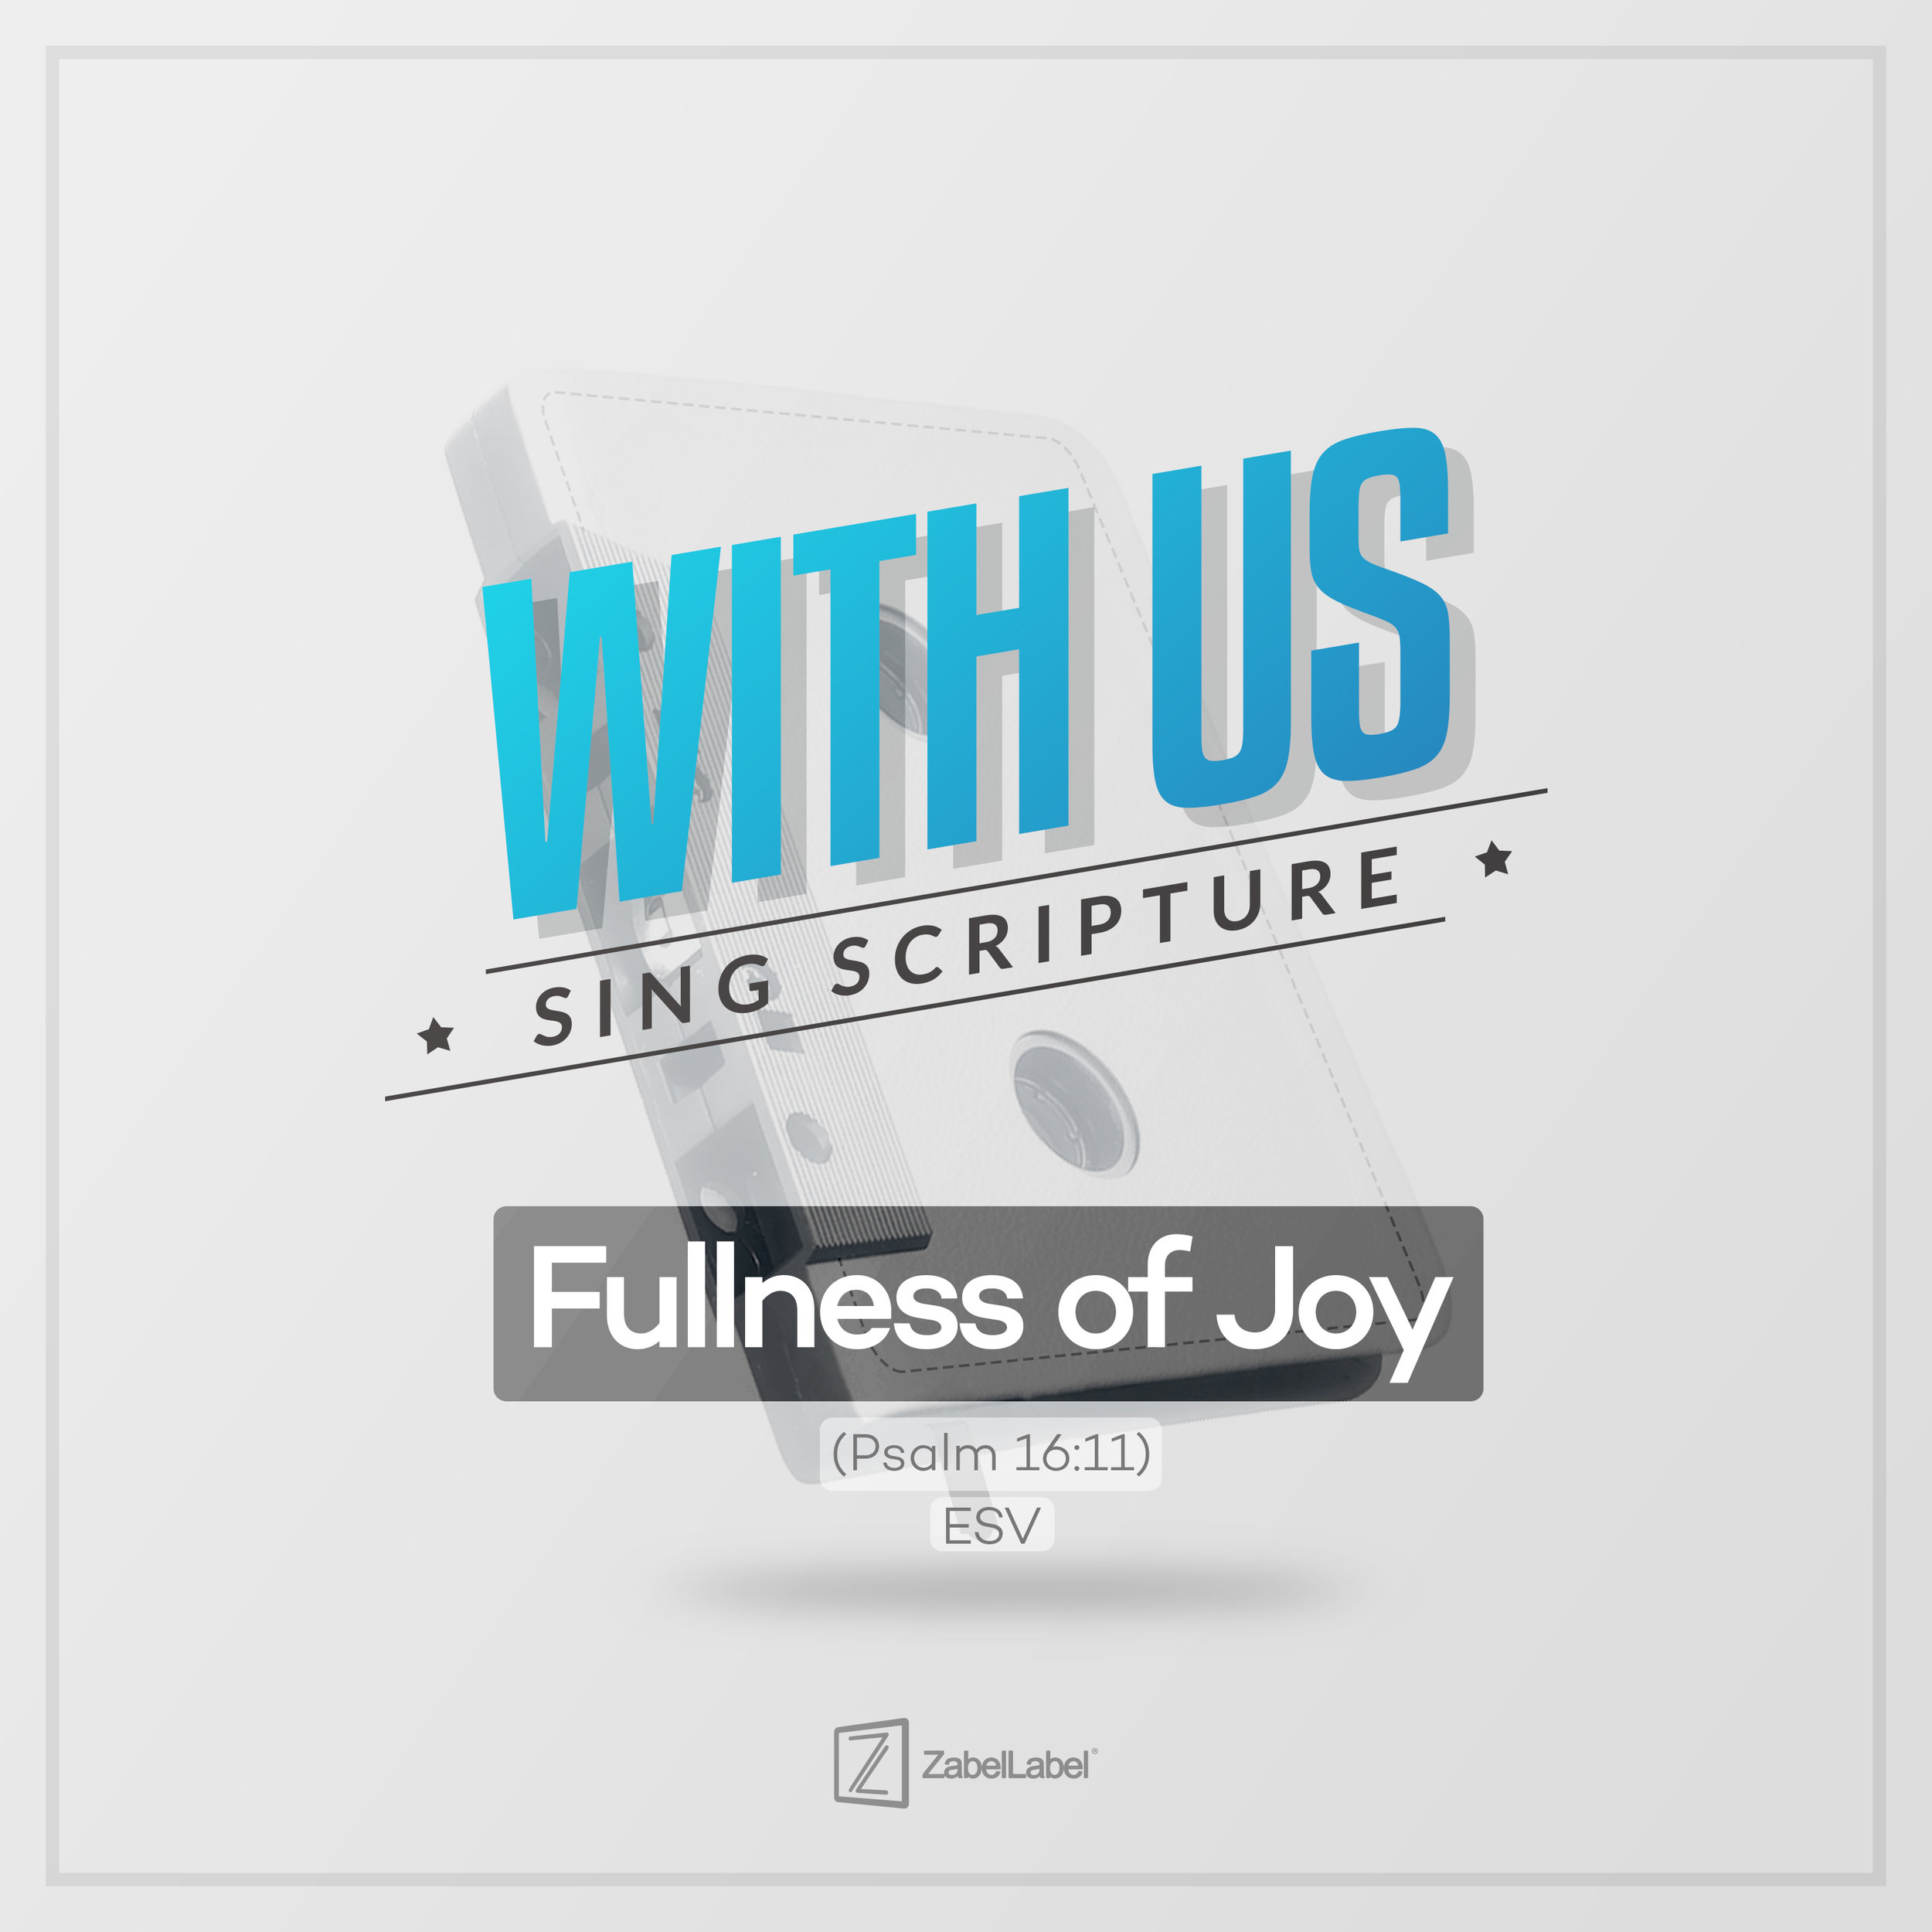 Fullness of Joy Graphic.jpg